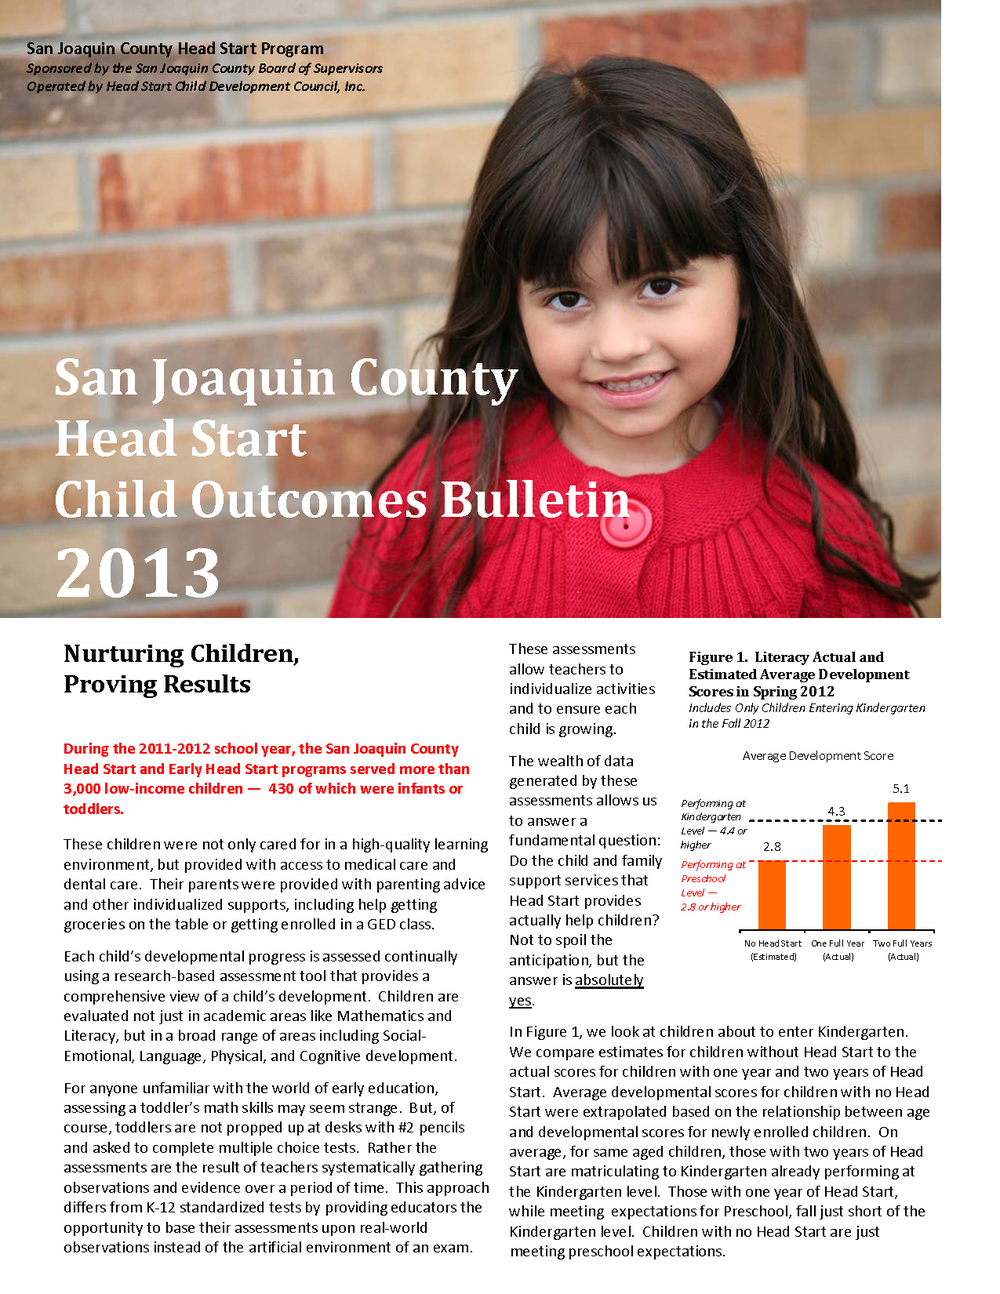 San Joaquin Head Start Program Impact Analysis 2013